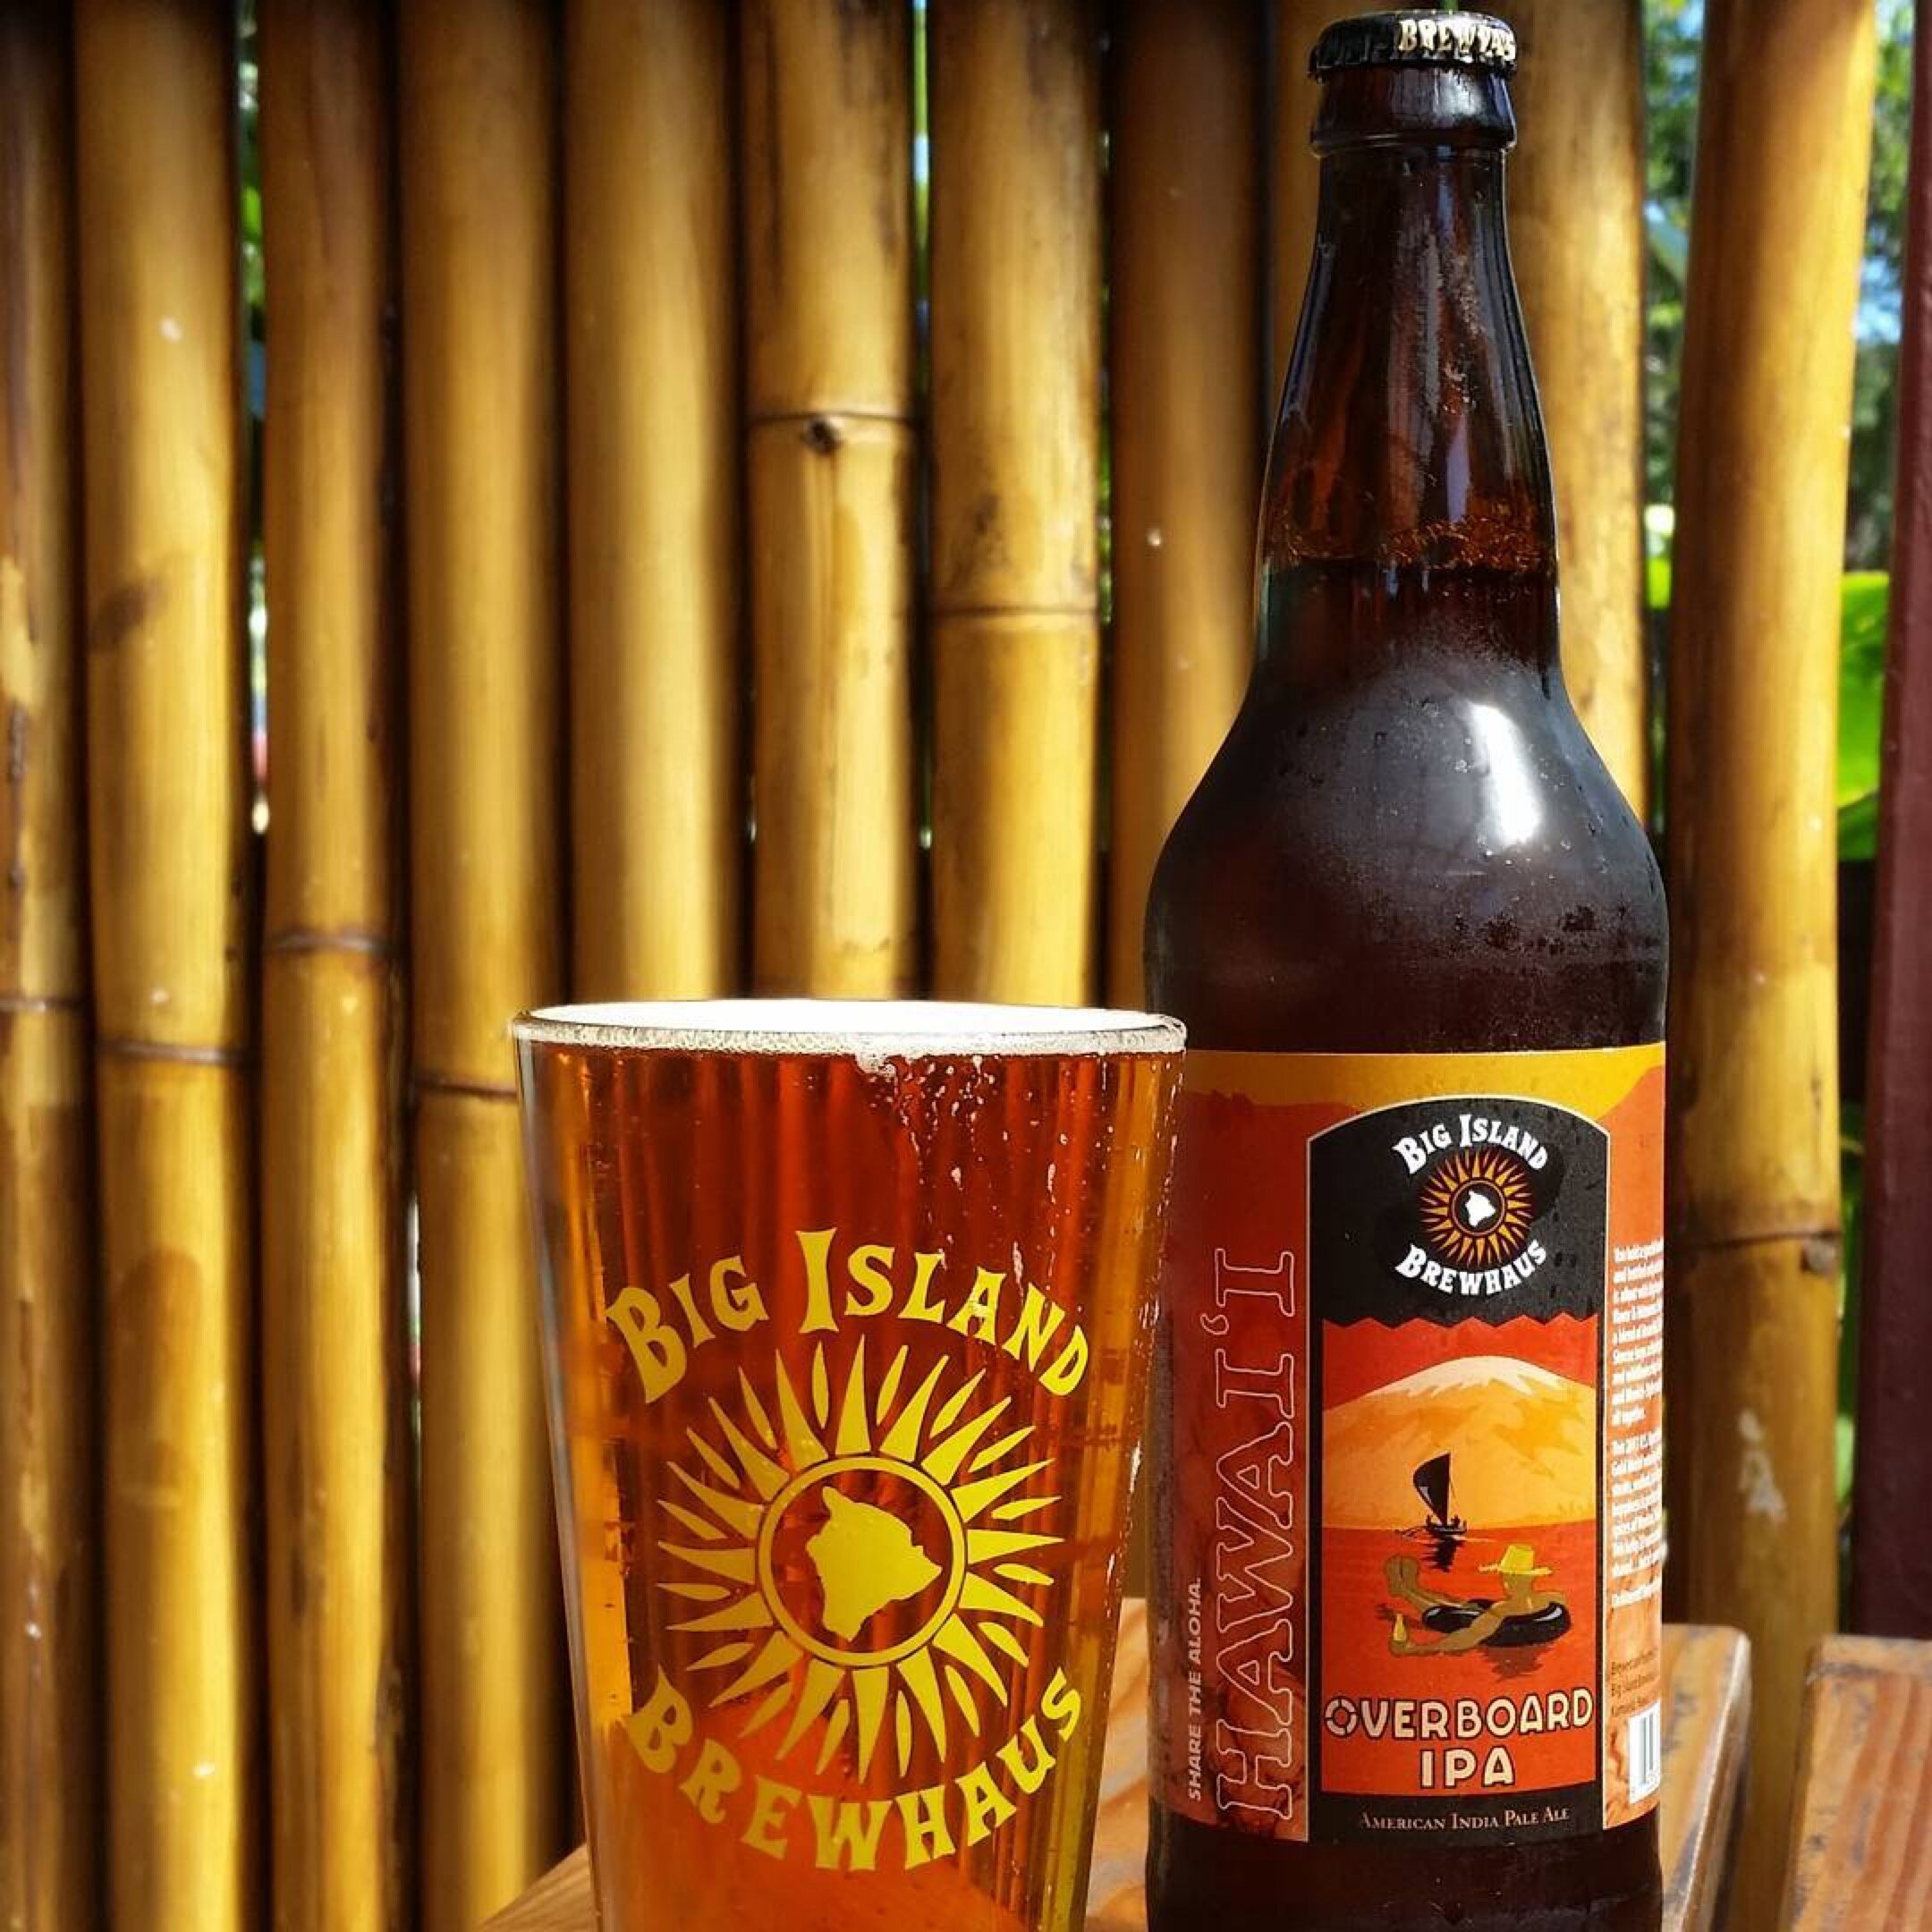 Big Island Brewhaus flagship beer, Overboard IPA. Courtesy photo.